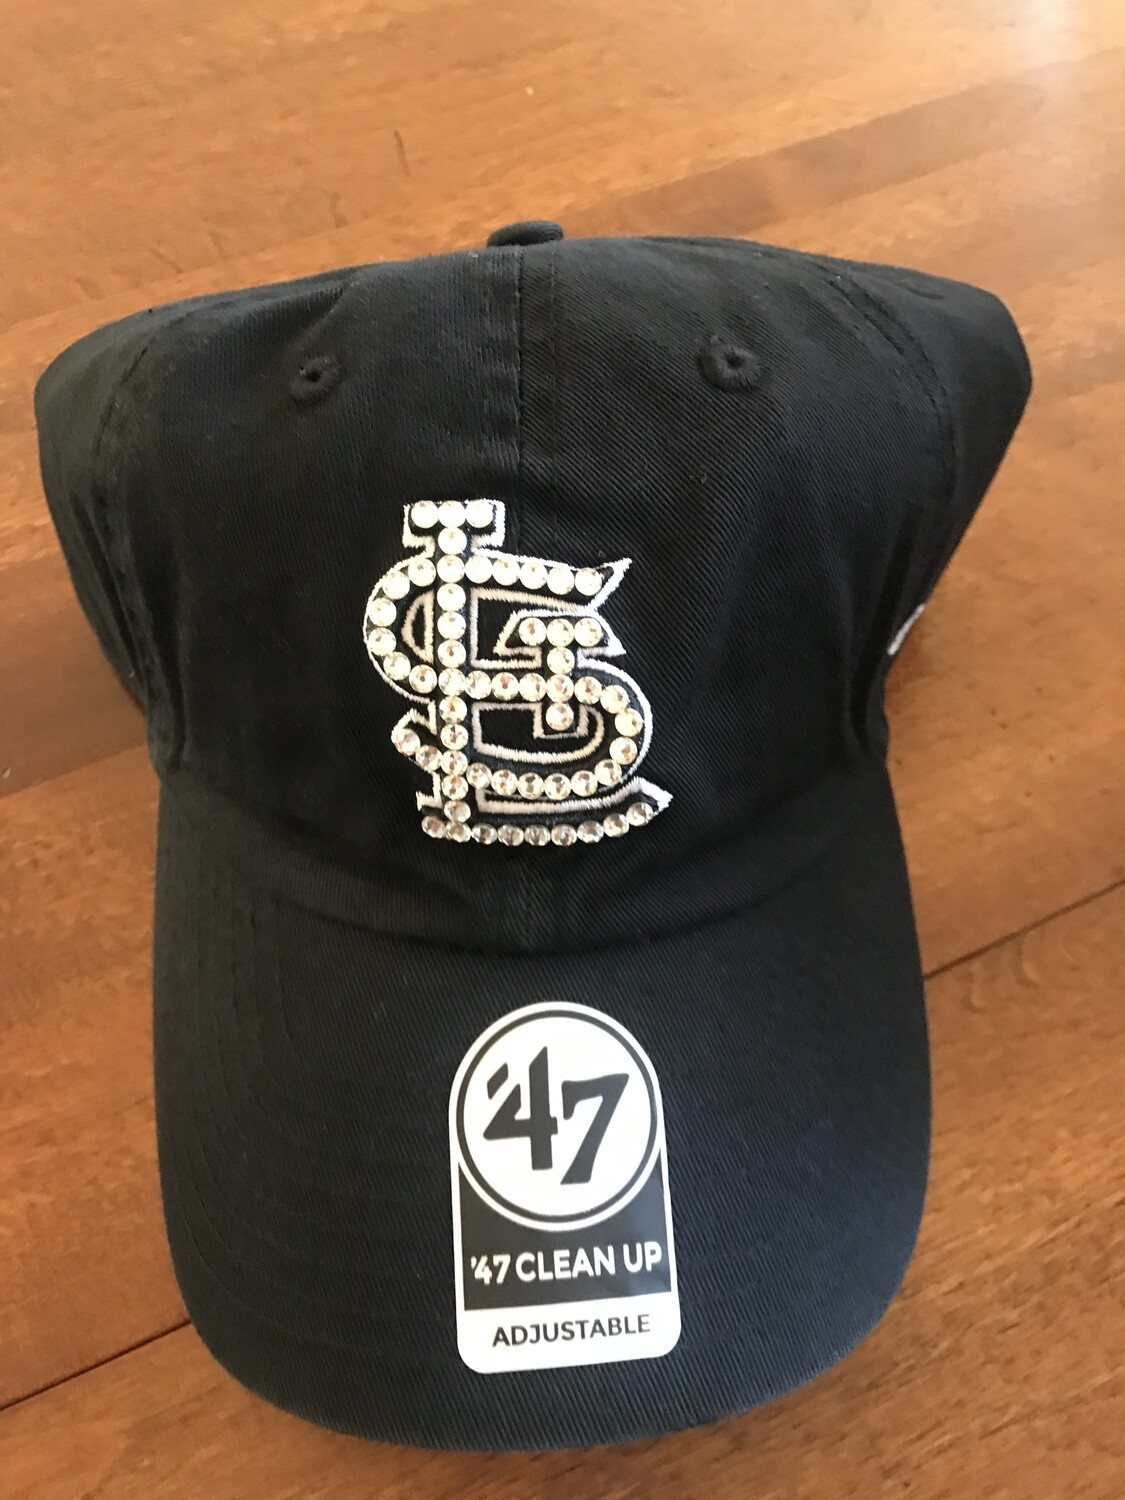 Black '47 STL Hat W/ Clear Crystal